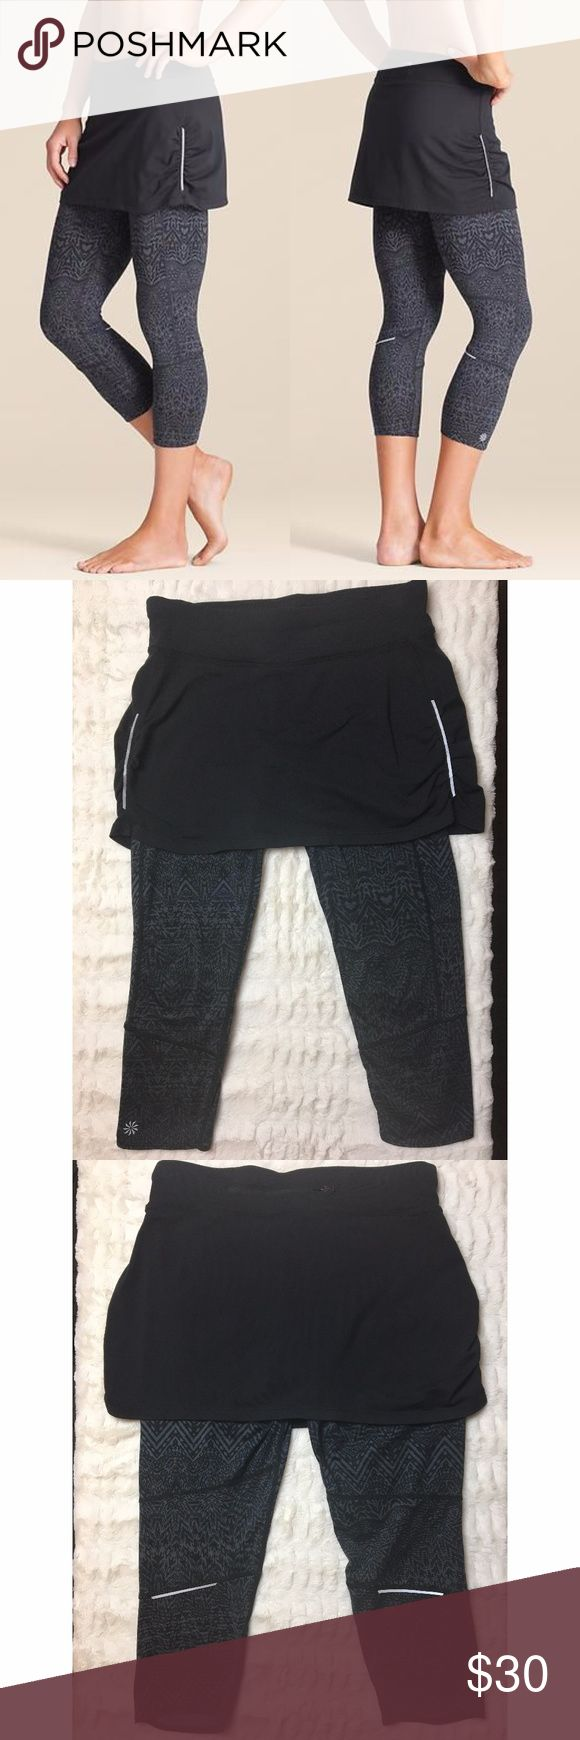 Athleta | Maluku Contender 2-in-1 leggings/skirt Athleta Maluku Contender 2 in 1 leggings/skirt. Gray and black design. Ruching on sides. Performance fitted, mid-rise, tight leg. Reflective strips on sides and back of legs. Neverend drawstring that stays put. Zip pocket across back, and small pocket on front inner band. Moisture wicking and breathable. 50+ UPF protection. Super comfortable- smooth and stretchy! Lycra spandex provides a no-shine effect when stretched.  In very good condition…